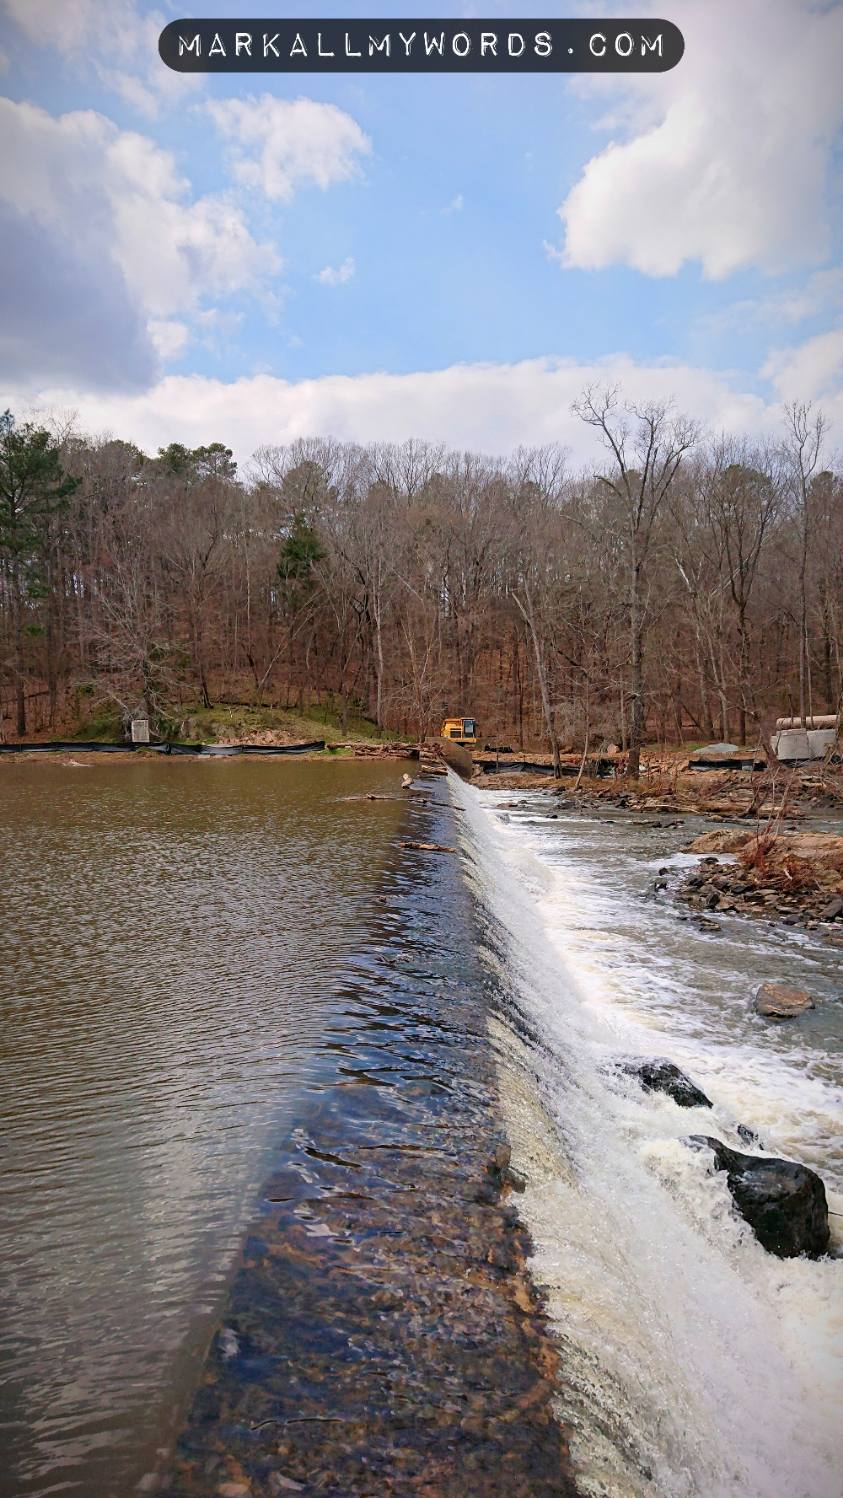 Mill dam with construction equipment in distance